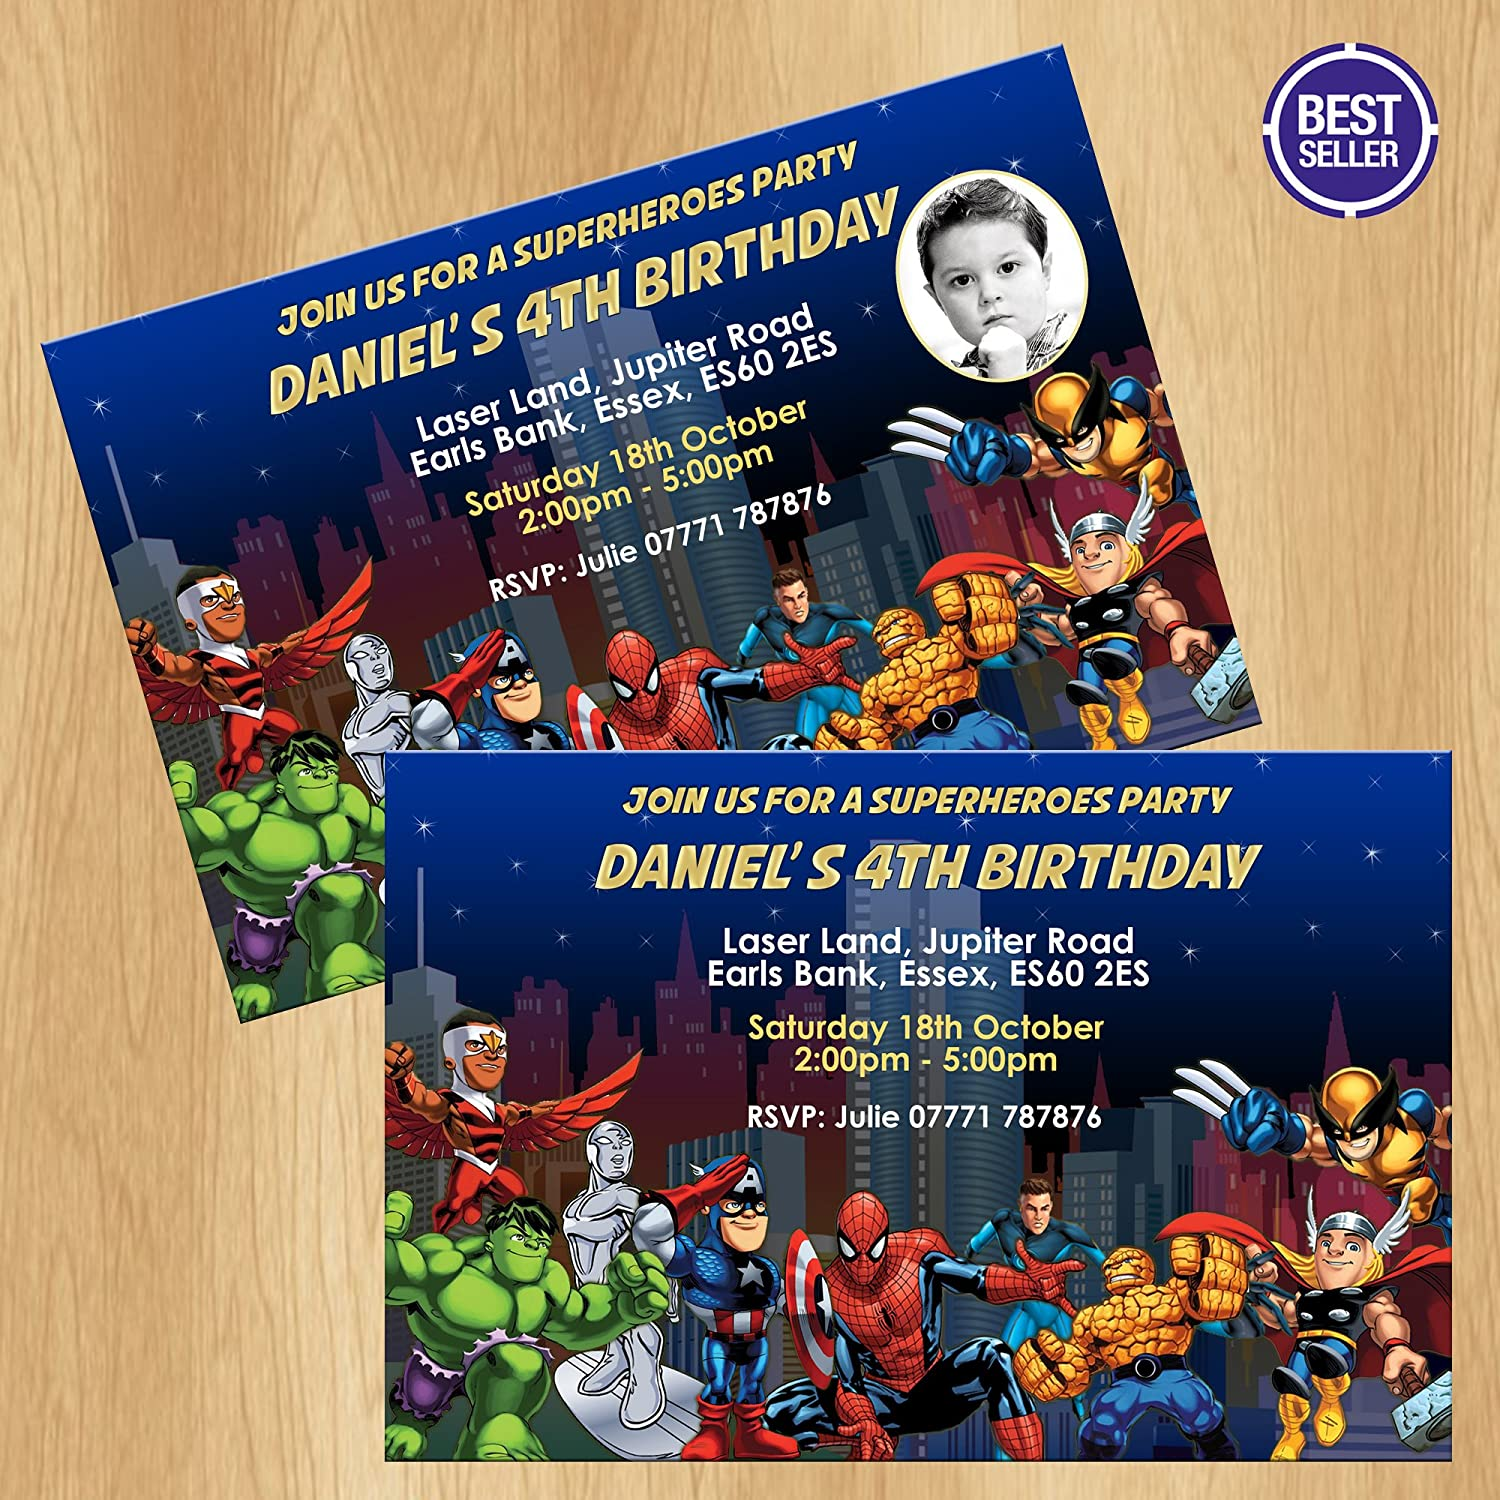 Avengers Superhero Party Invitations Personalised Invites: Amazon.co ...